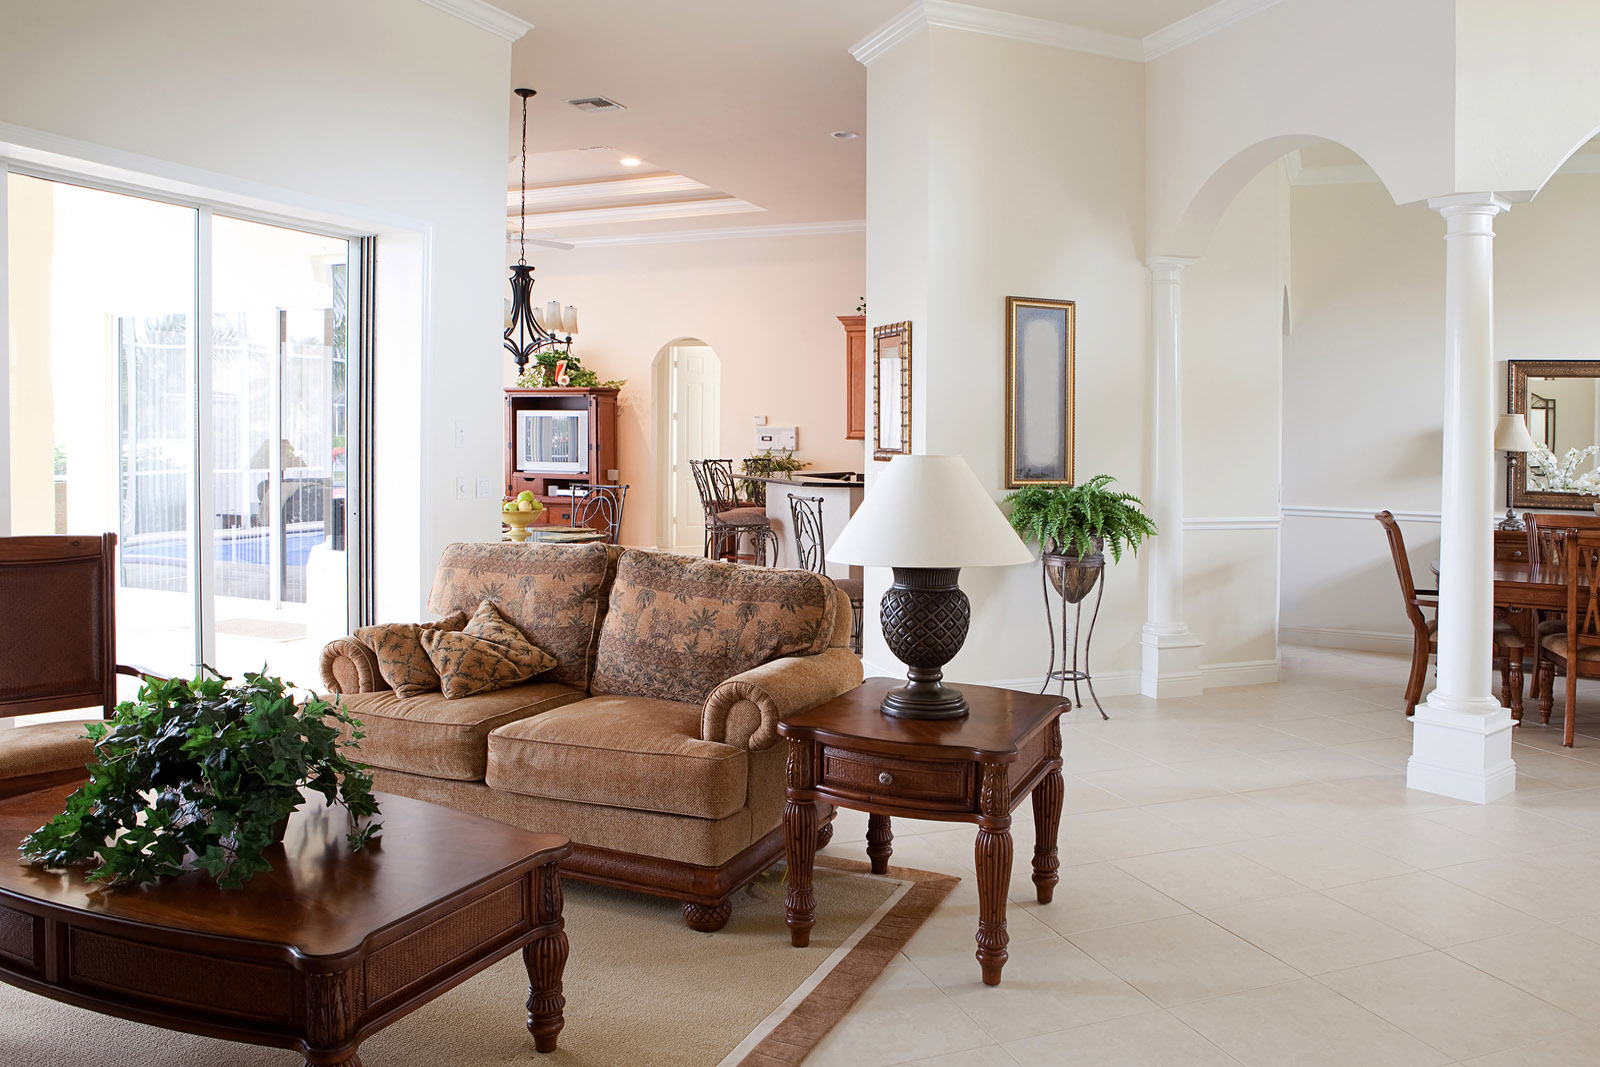 Renovated living room with tiled floors and arched entryways